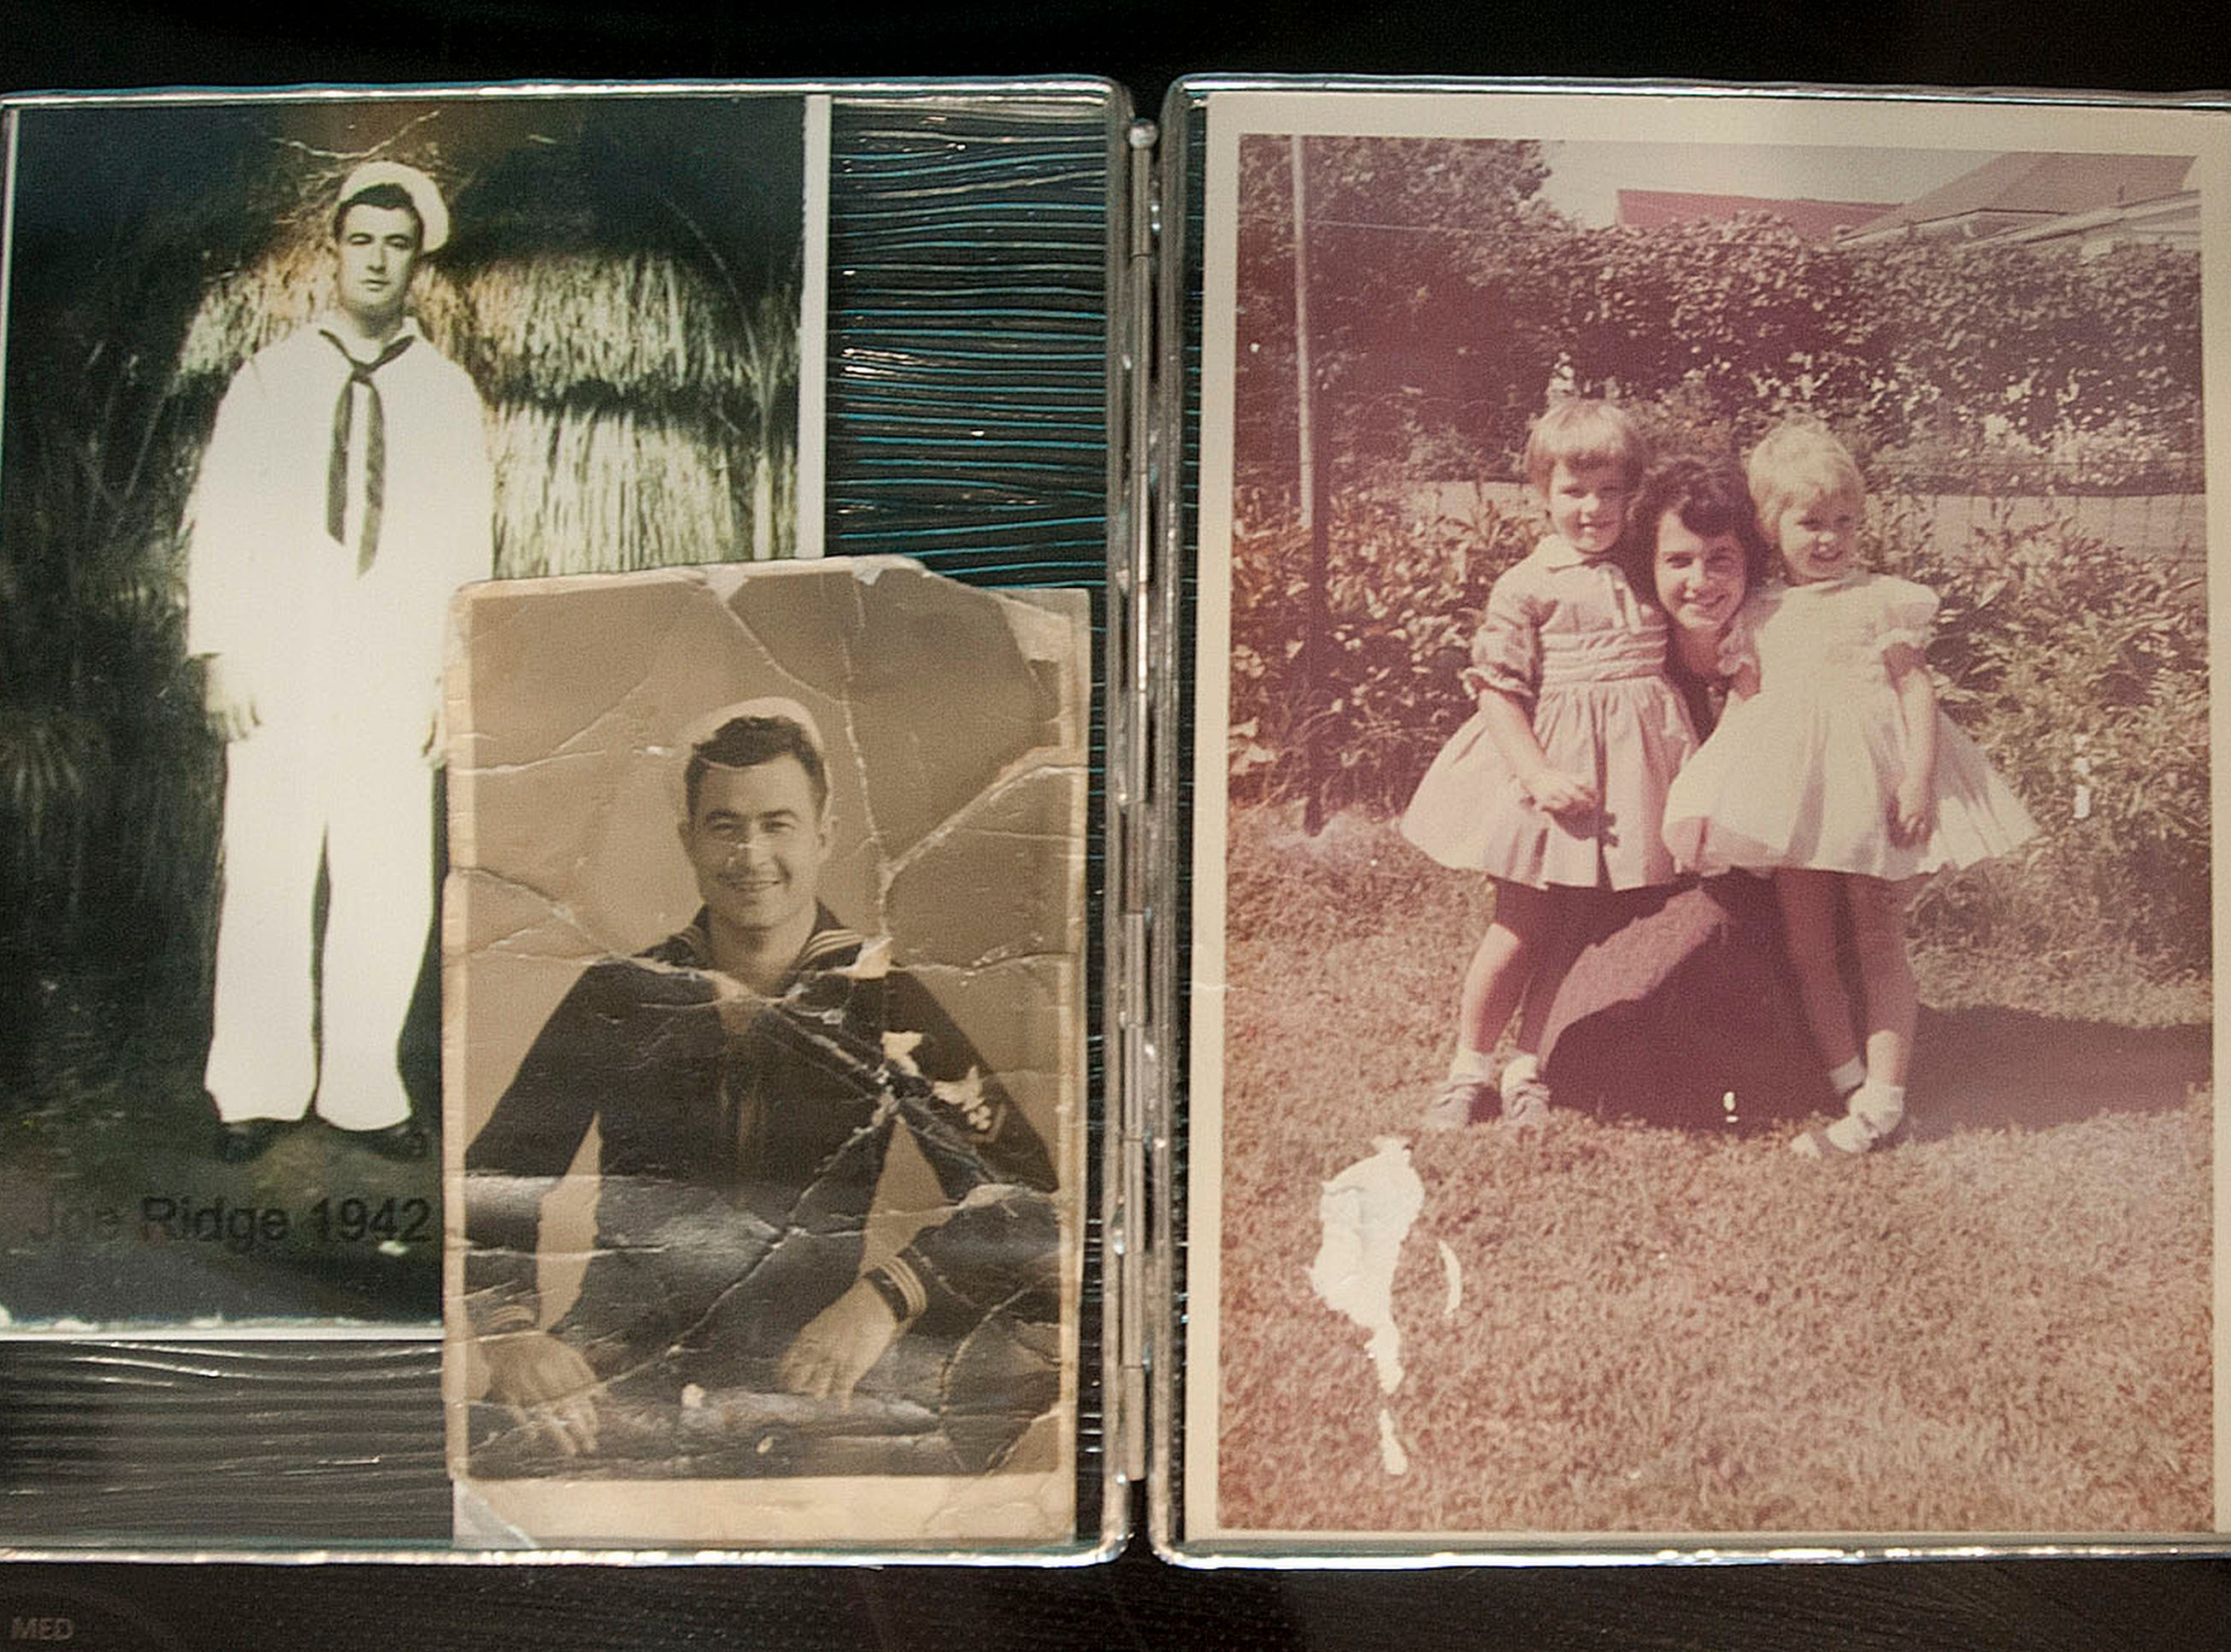 Atop the sewing machine are photos of Puthuff's grandfather, Joseph Ridge, when he joined the U.S. Navy in Hawaii in 1942, left, and during the Korean War, 1950, bottom right. At right is a photo of Puthuff's mother, Thelma Puthuff, holding Denise, left, and Denise's sister, Dianna, right.